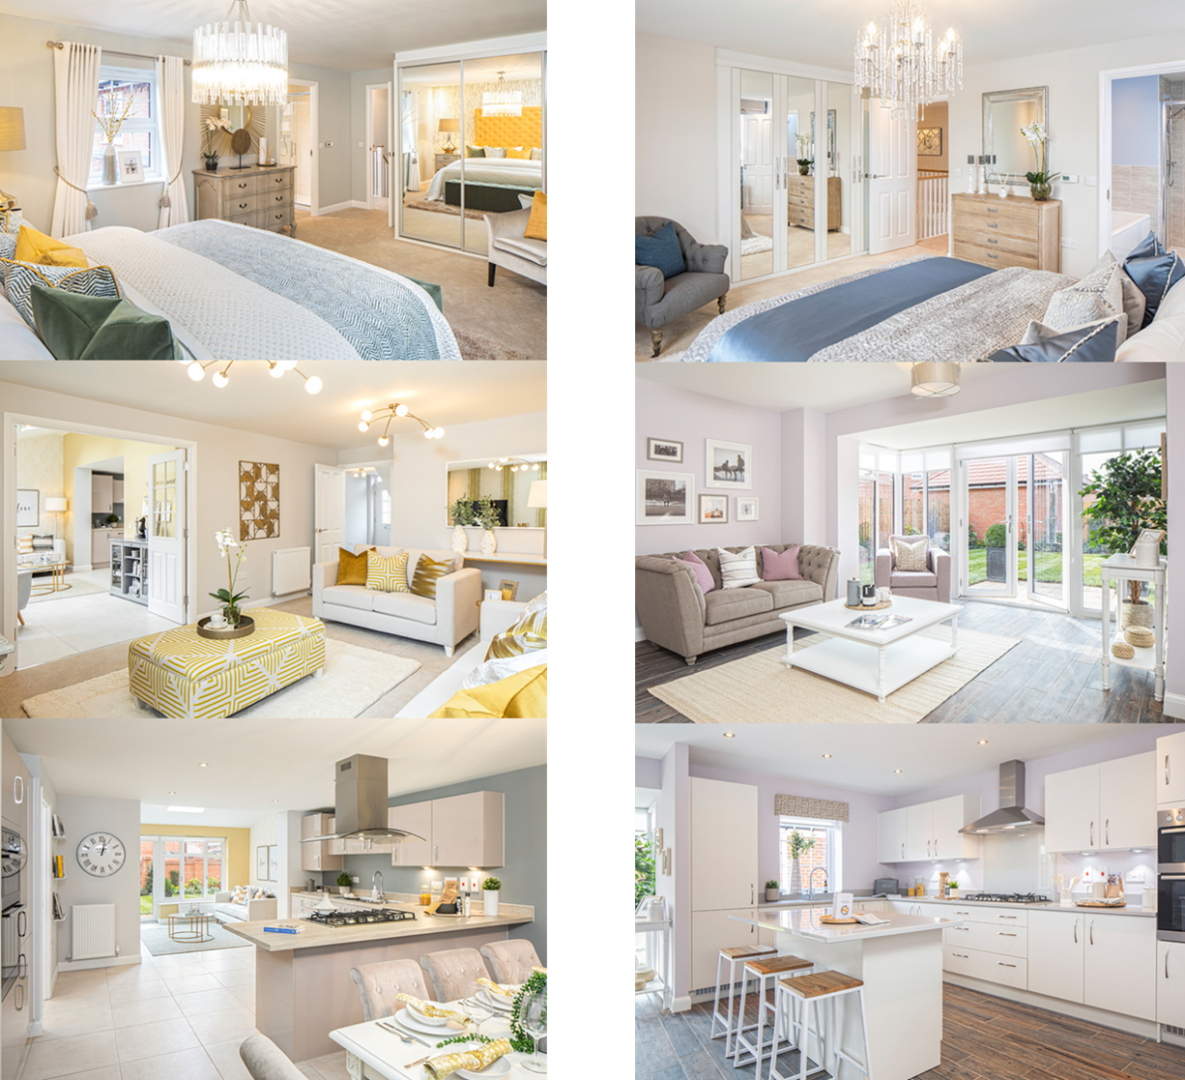 David Wilson Homes Cadleigh and Manning Show Home Images